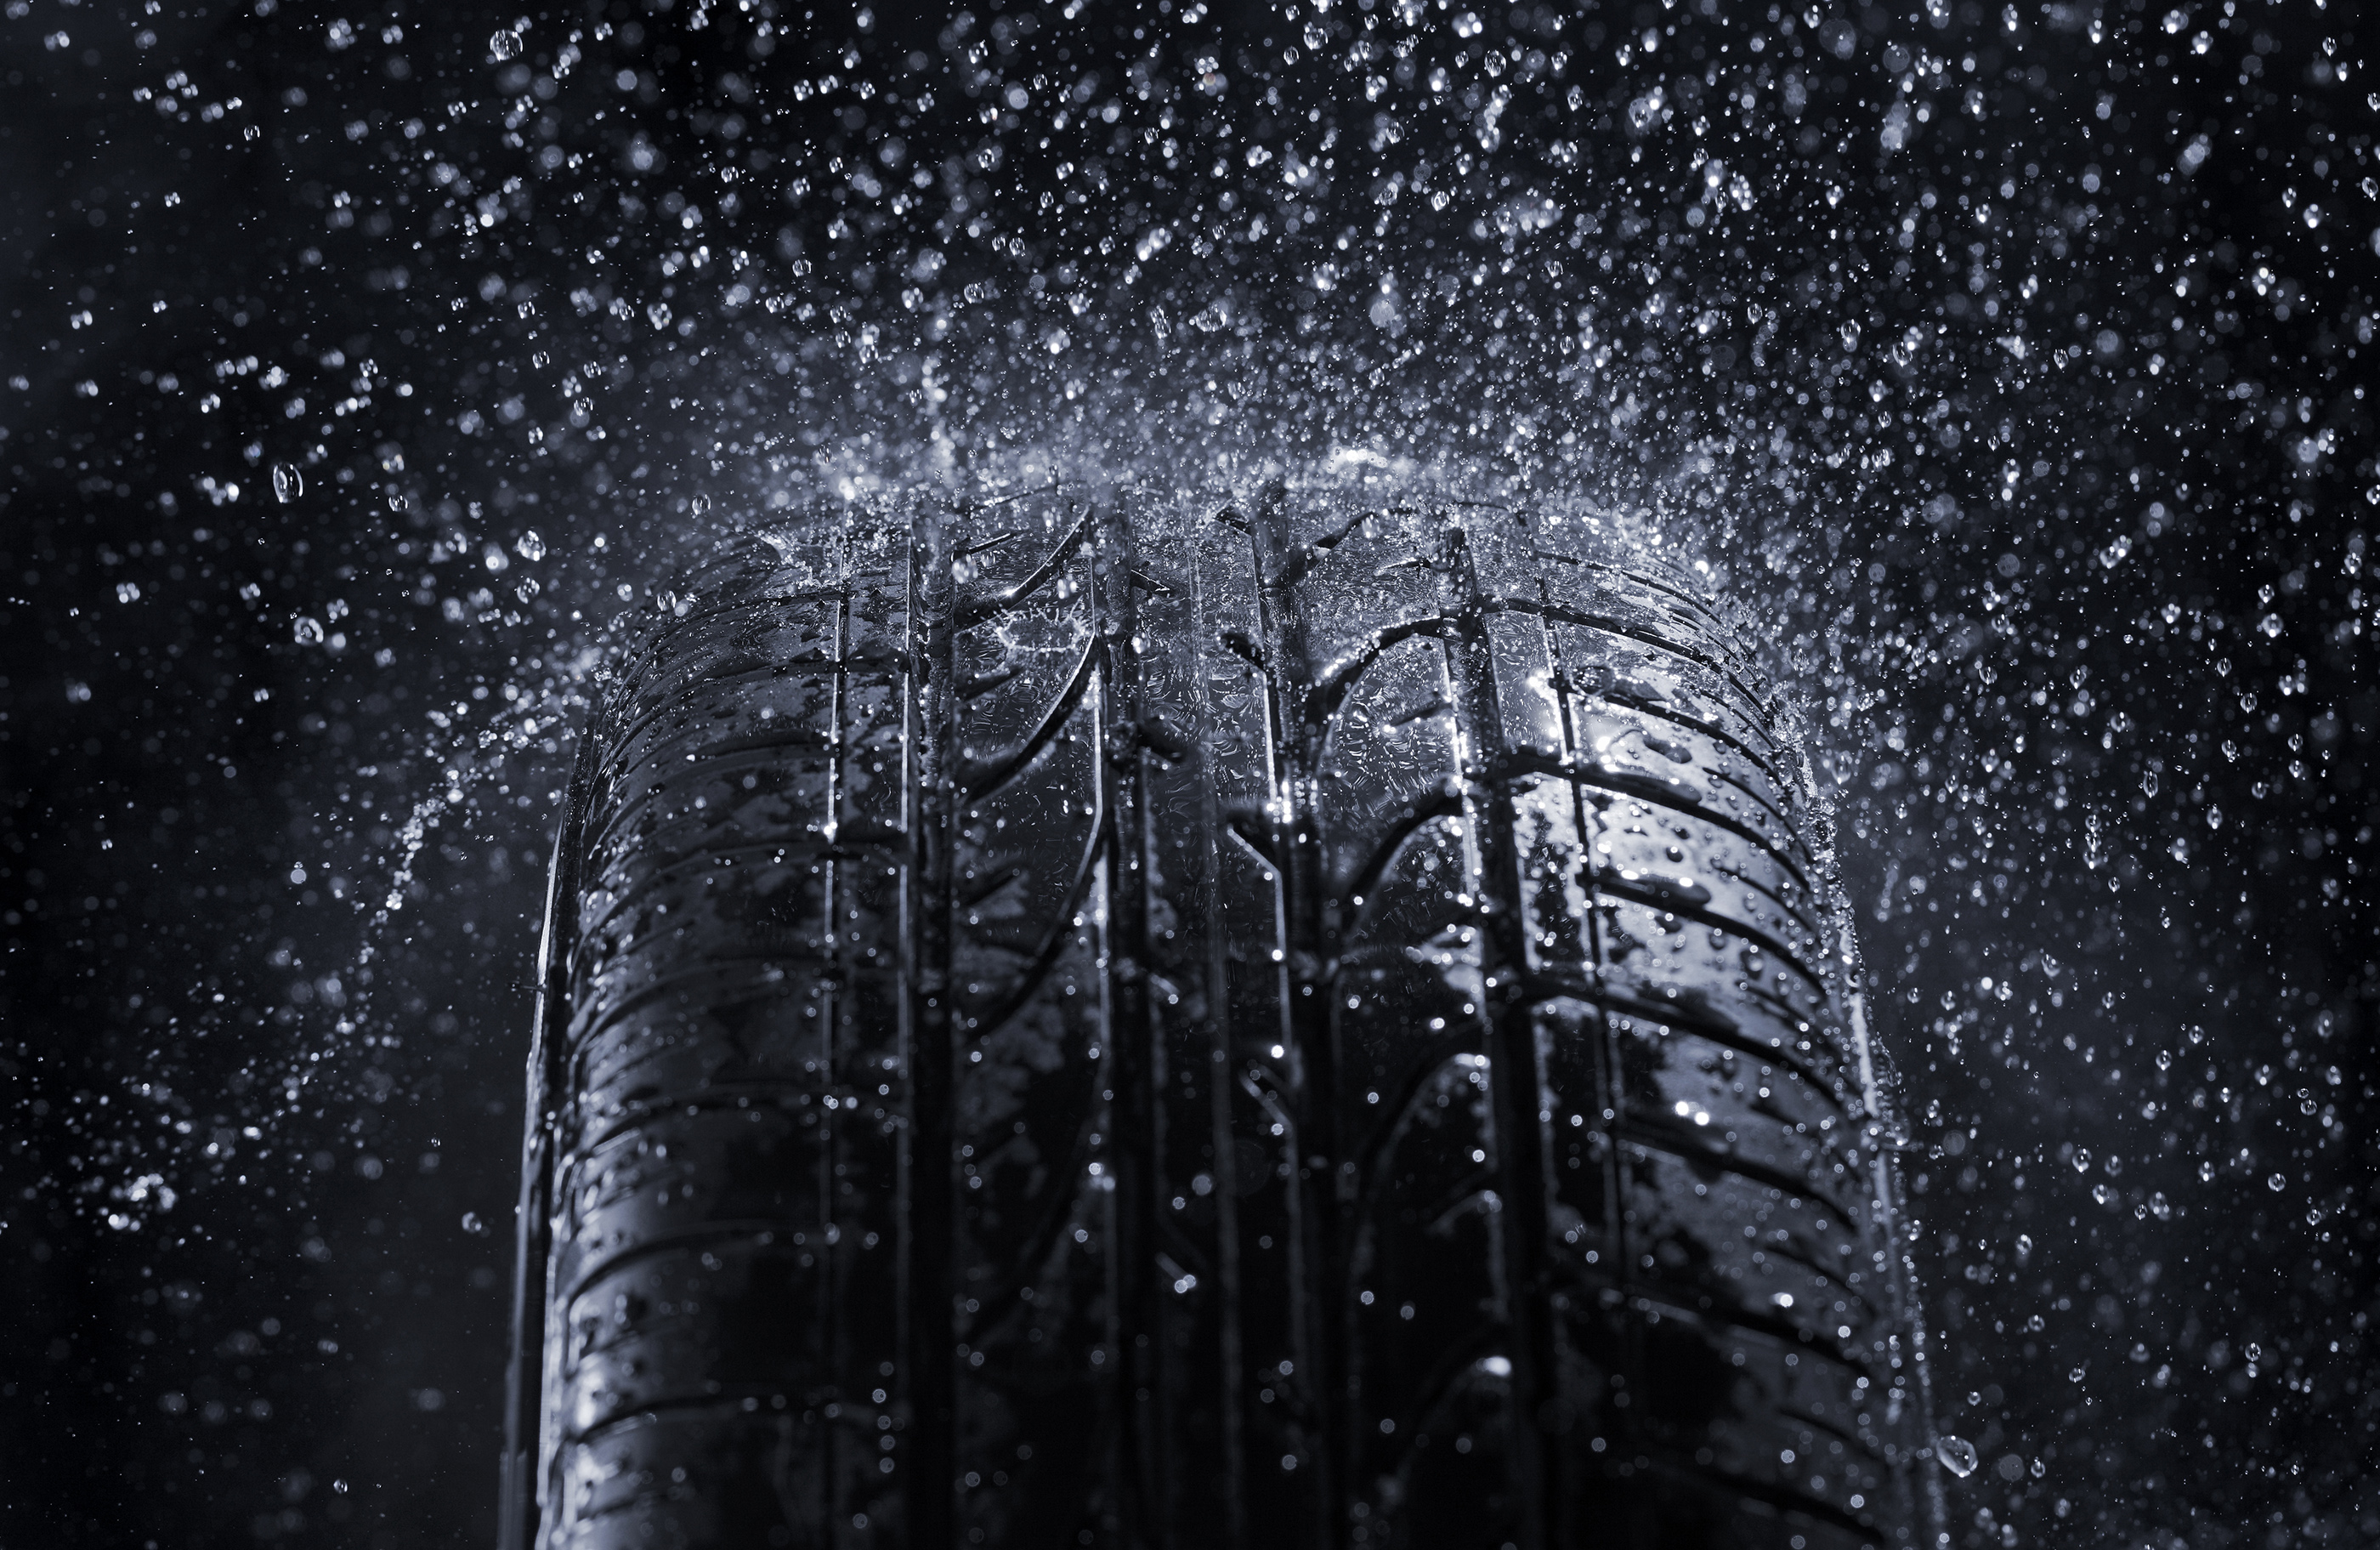 Car tire 4934 wetted by rain 55866